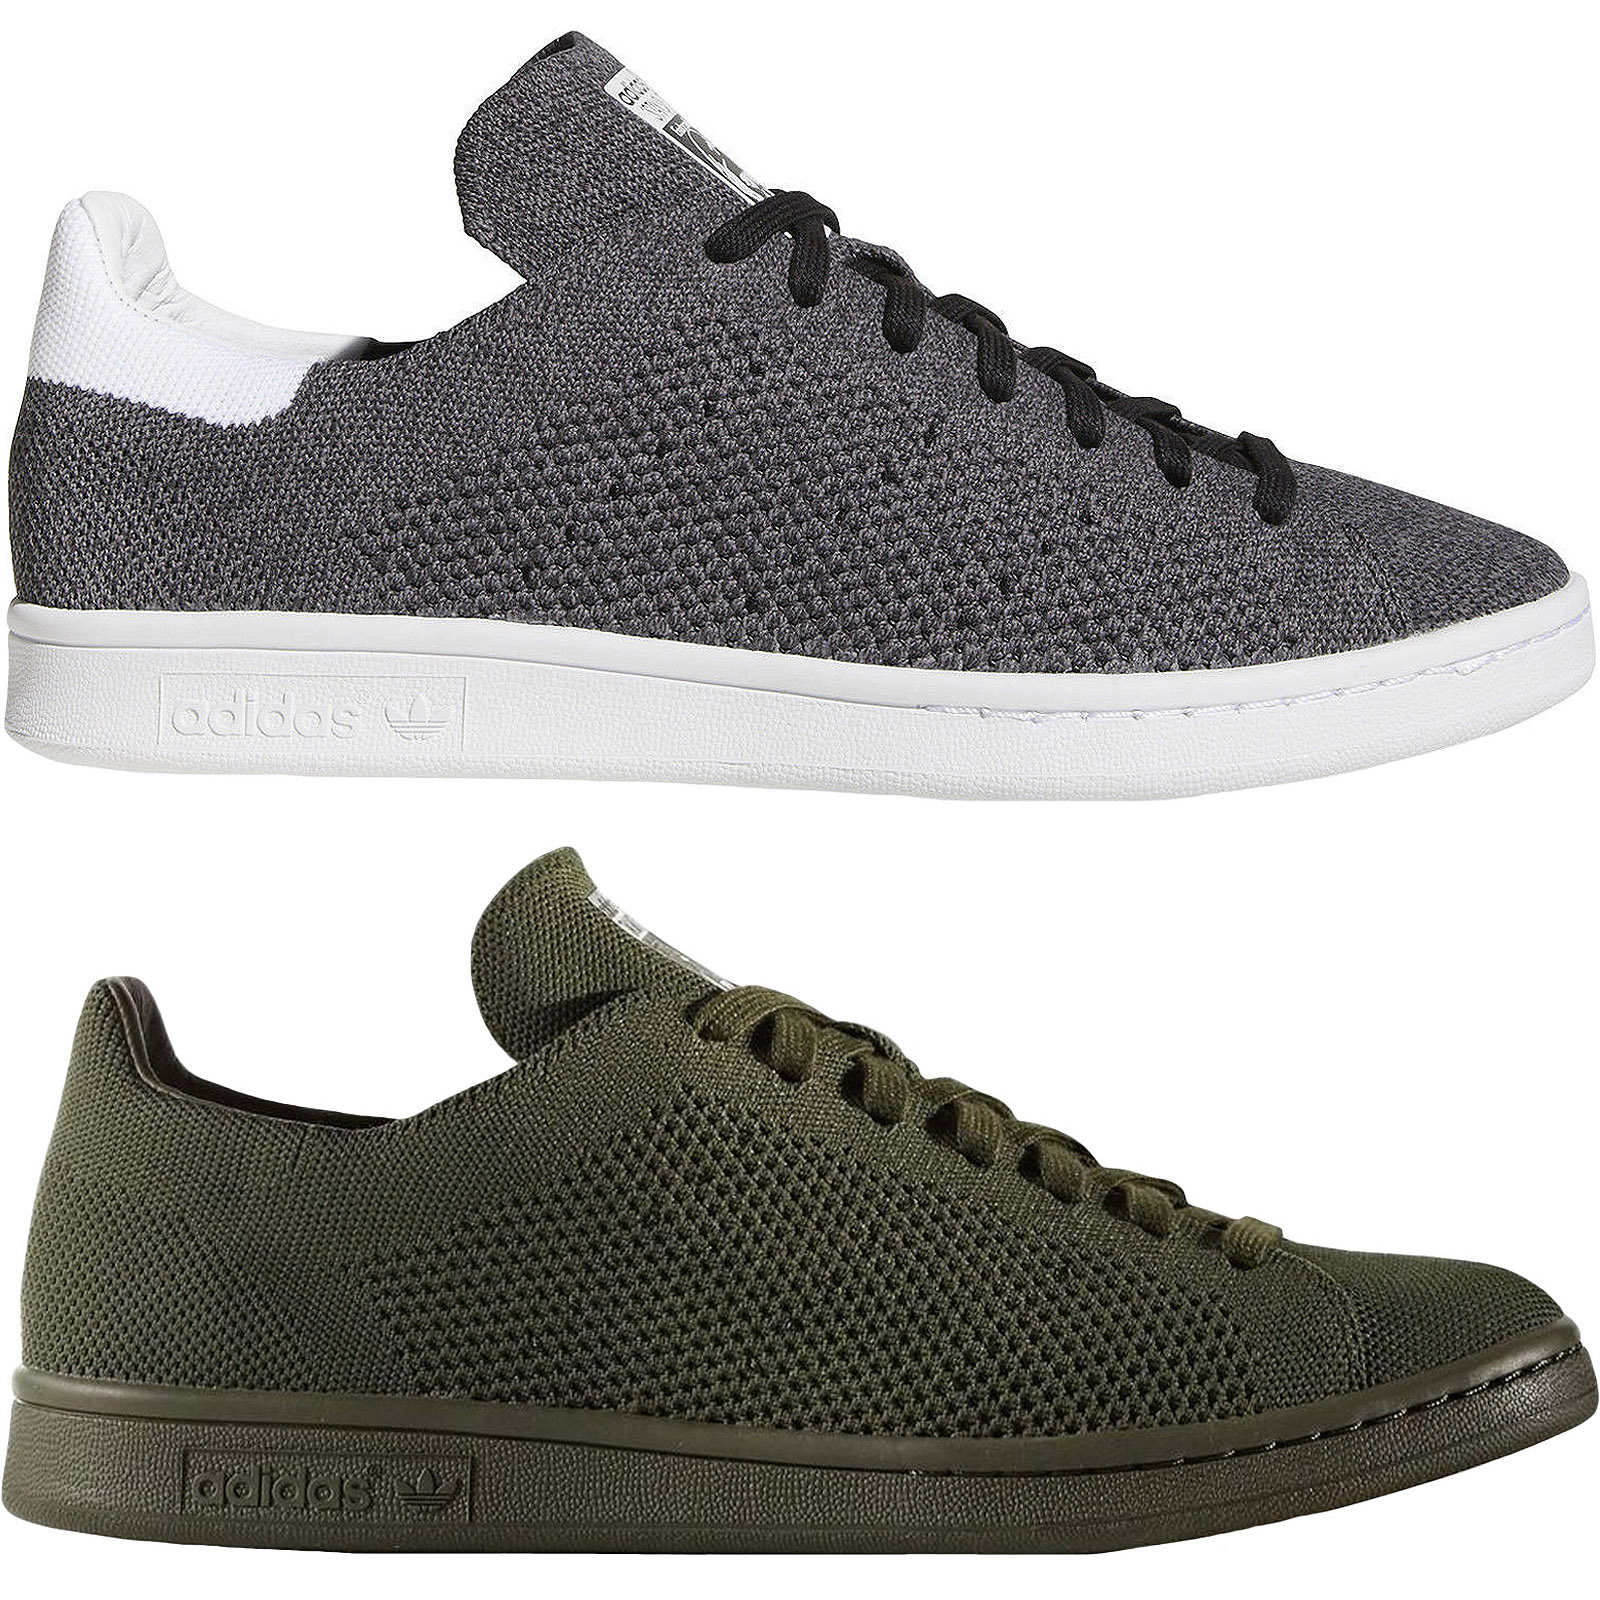 Details about adidas Originals Mens Stan Smith Primeknit Lace Up Casual Trainers Sneakers